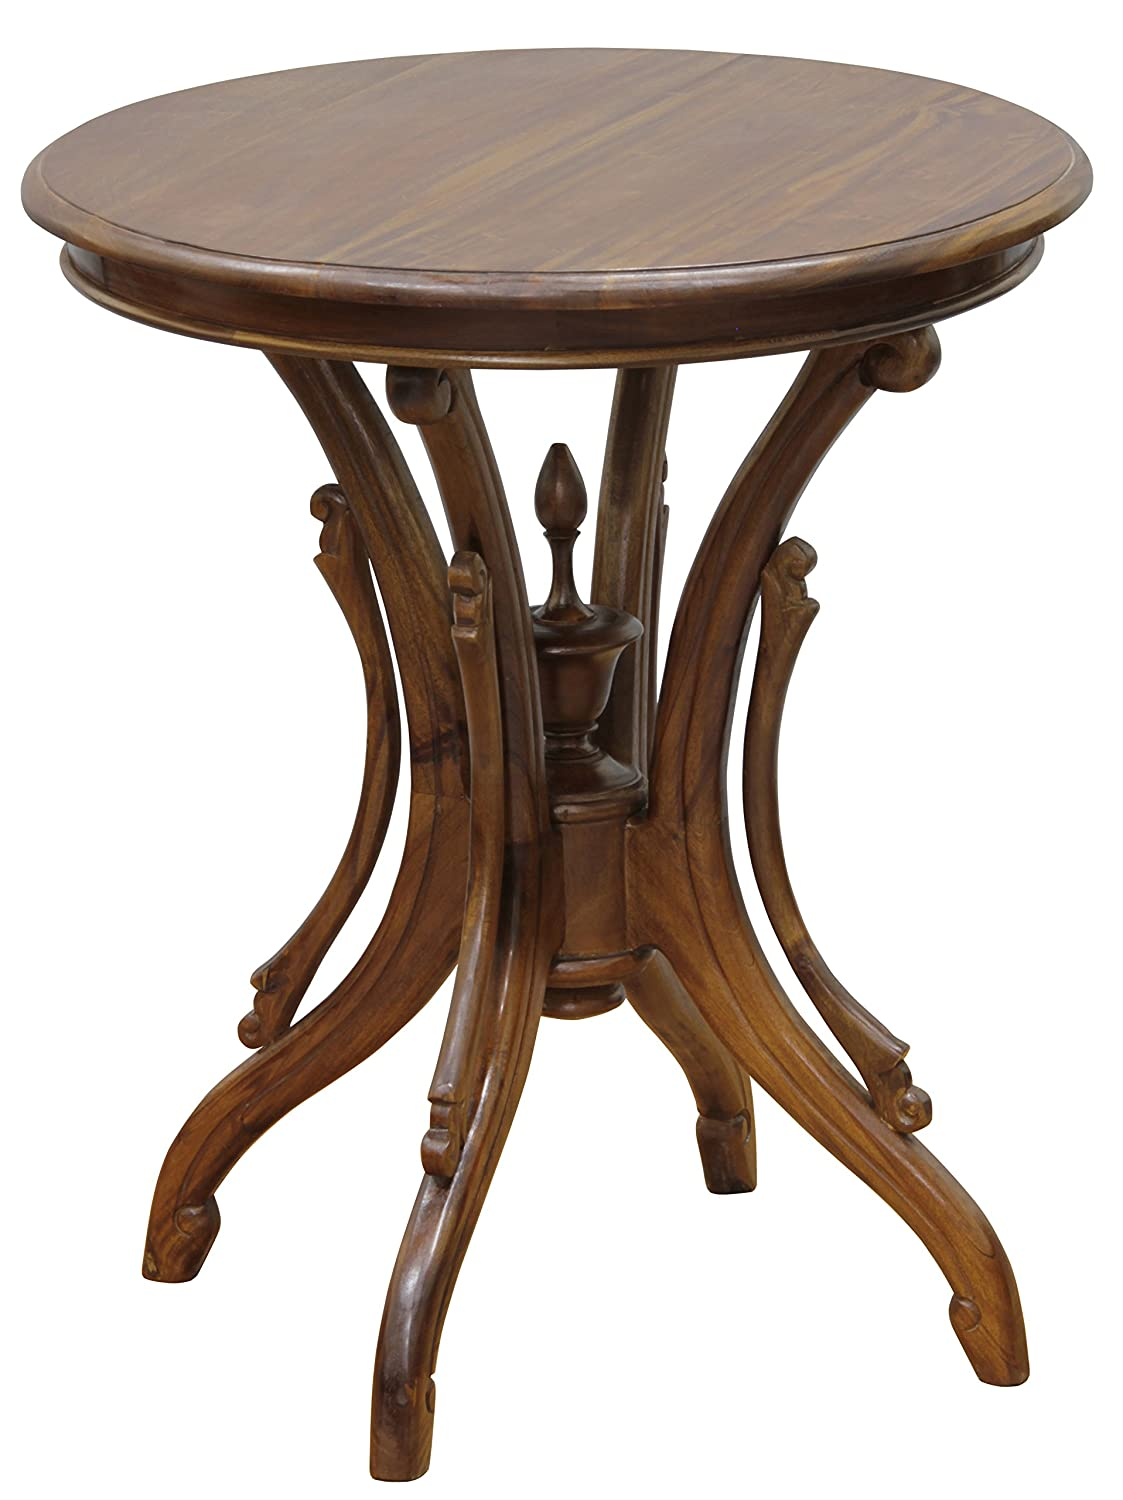 Amazon com nes furniture nes fine handcrafted furniture solid mahogany wood venice wine table 28 light pecan kitchen dining